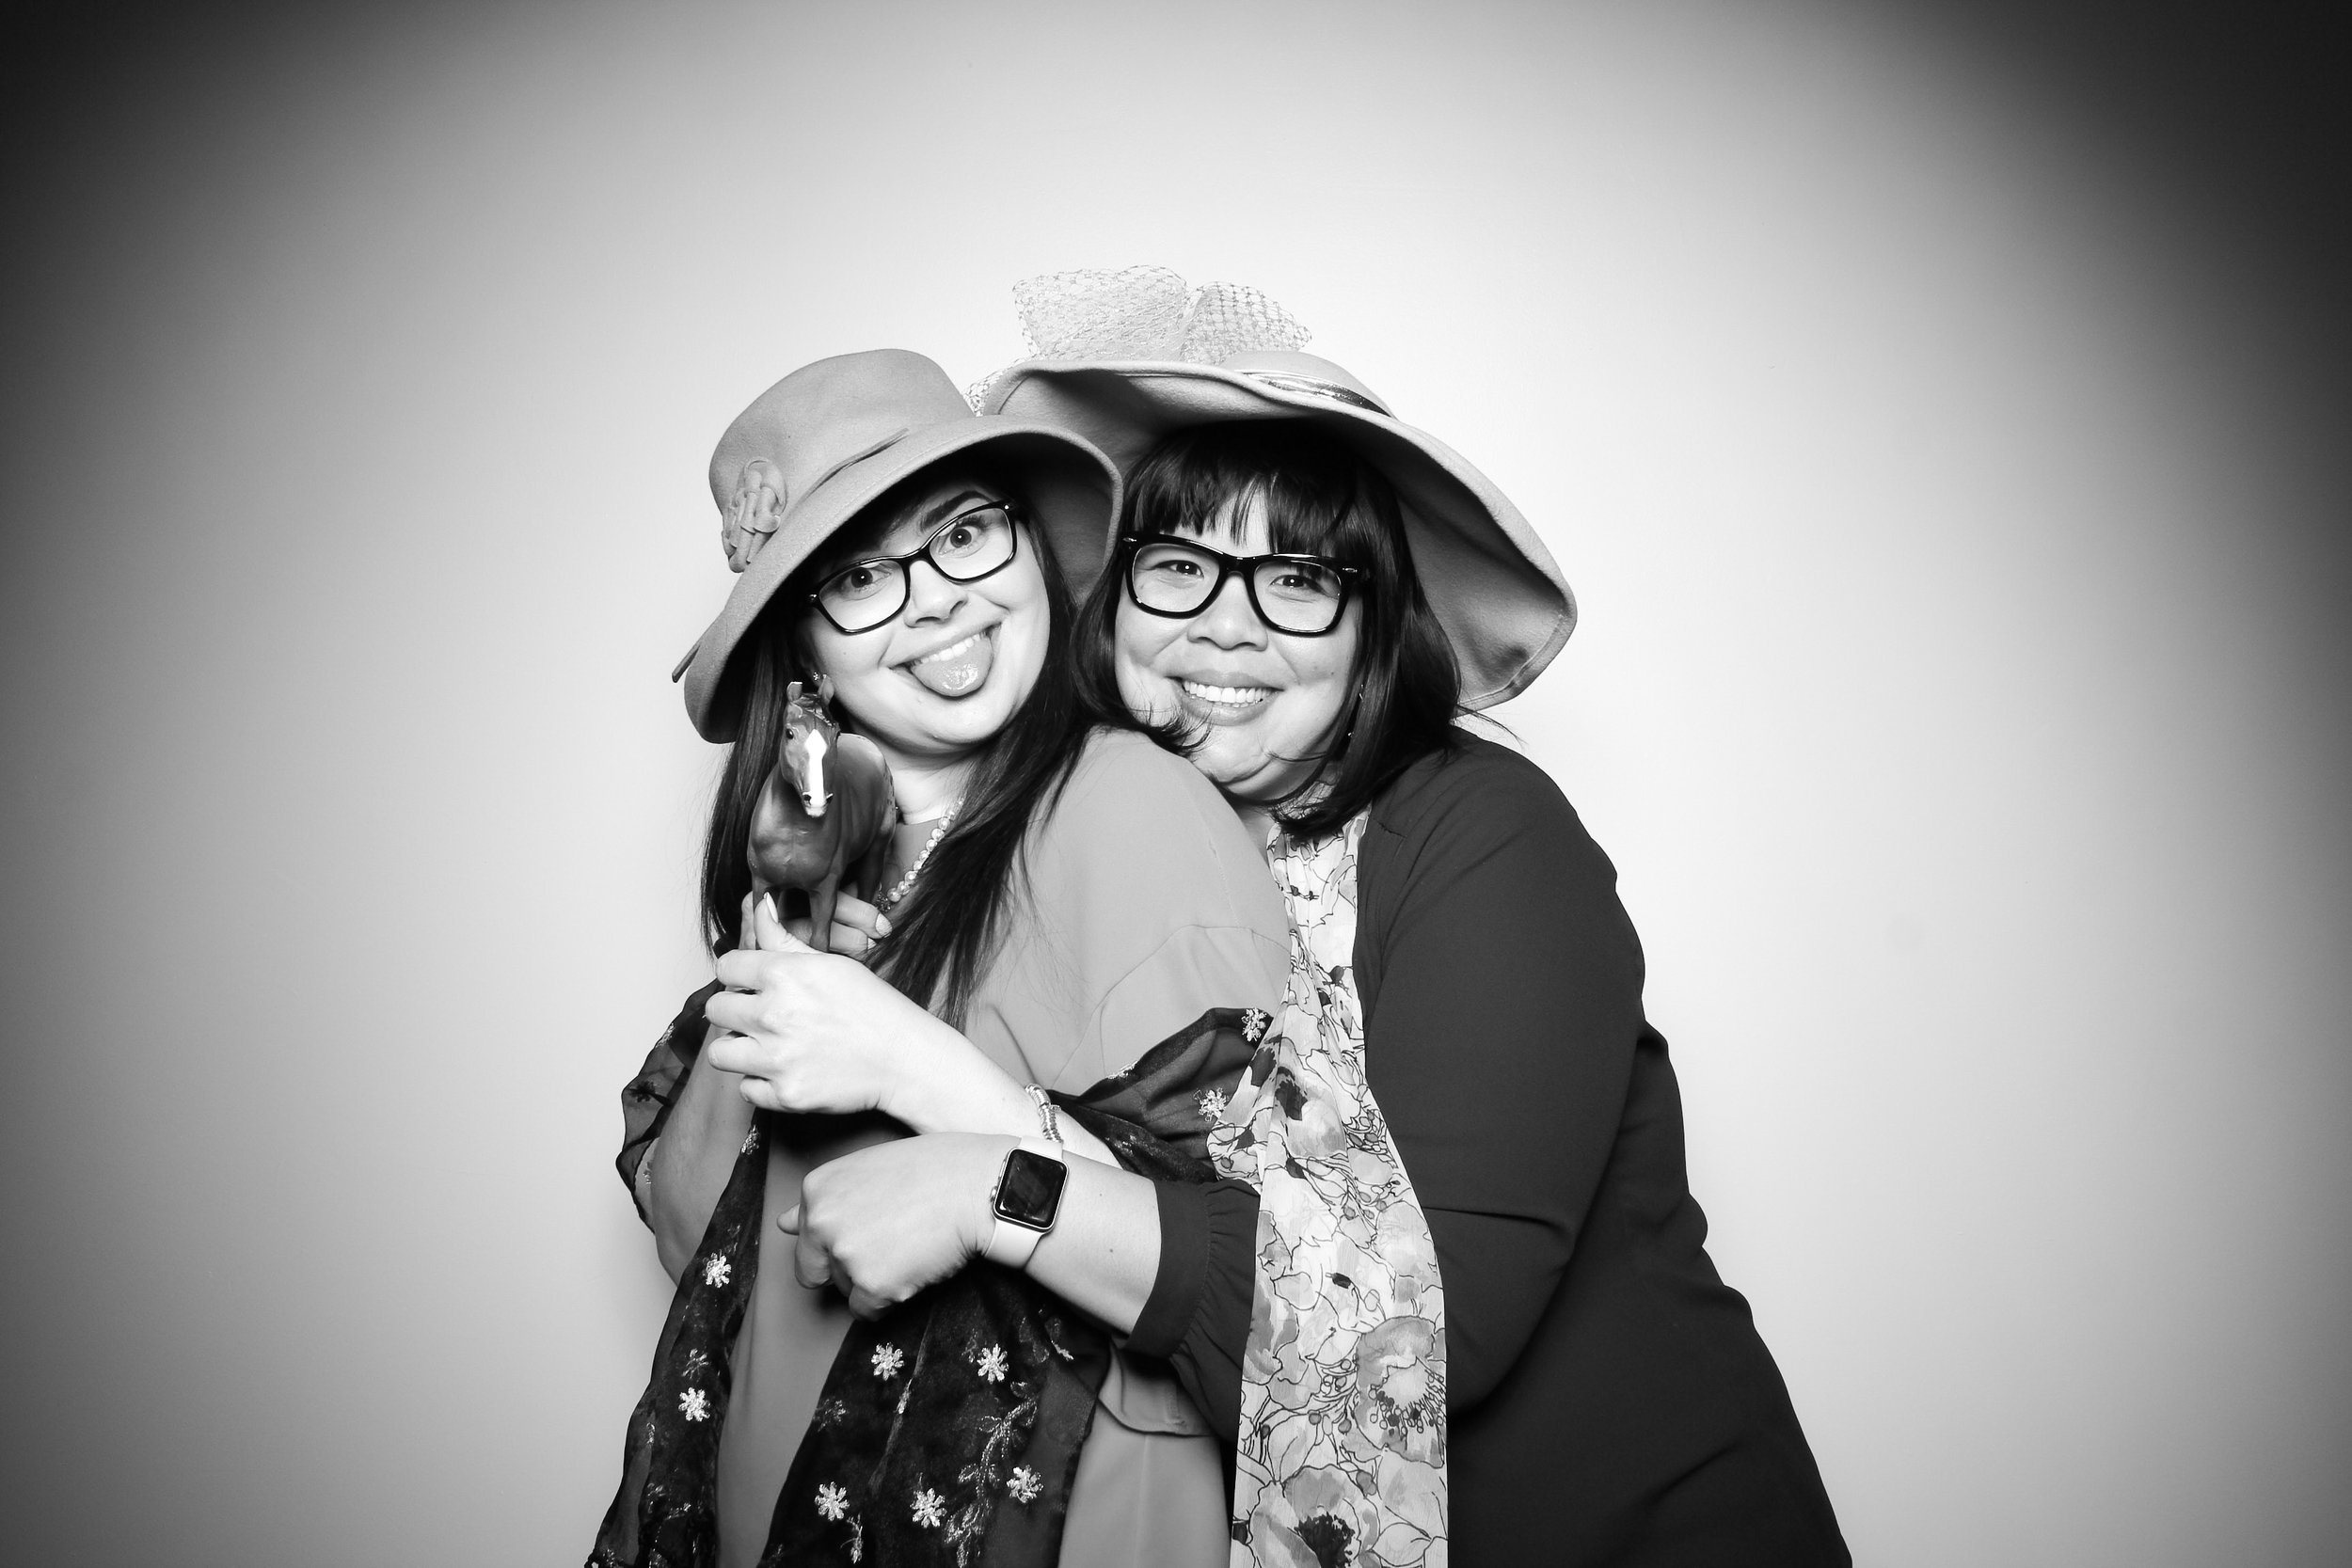 Venue_West_J&L_Catering_Chicago_Photo_Booth_Vitnage__13.jpg